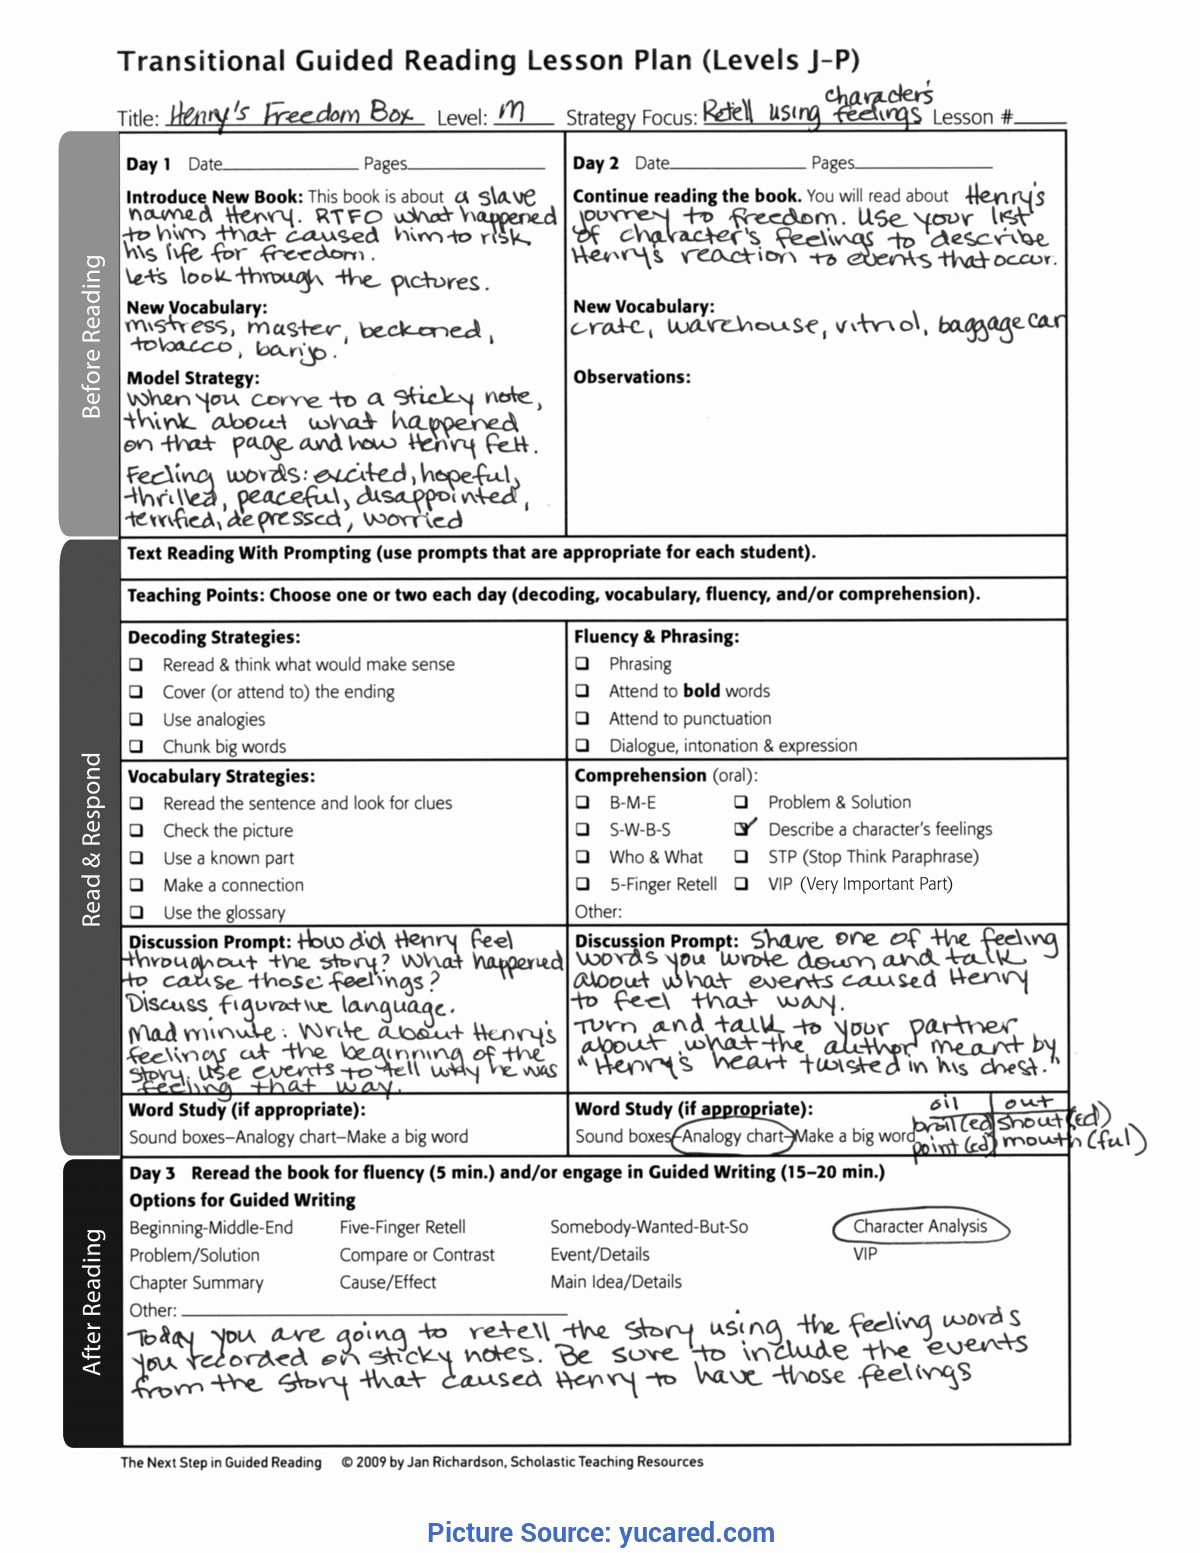 Siop Model Lesson Plan Template Beautiful Valuable Lesson Plan Template New Zealand 39 Best Unit Plan Templates [word Pdf] Templat